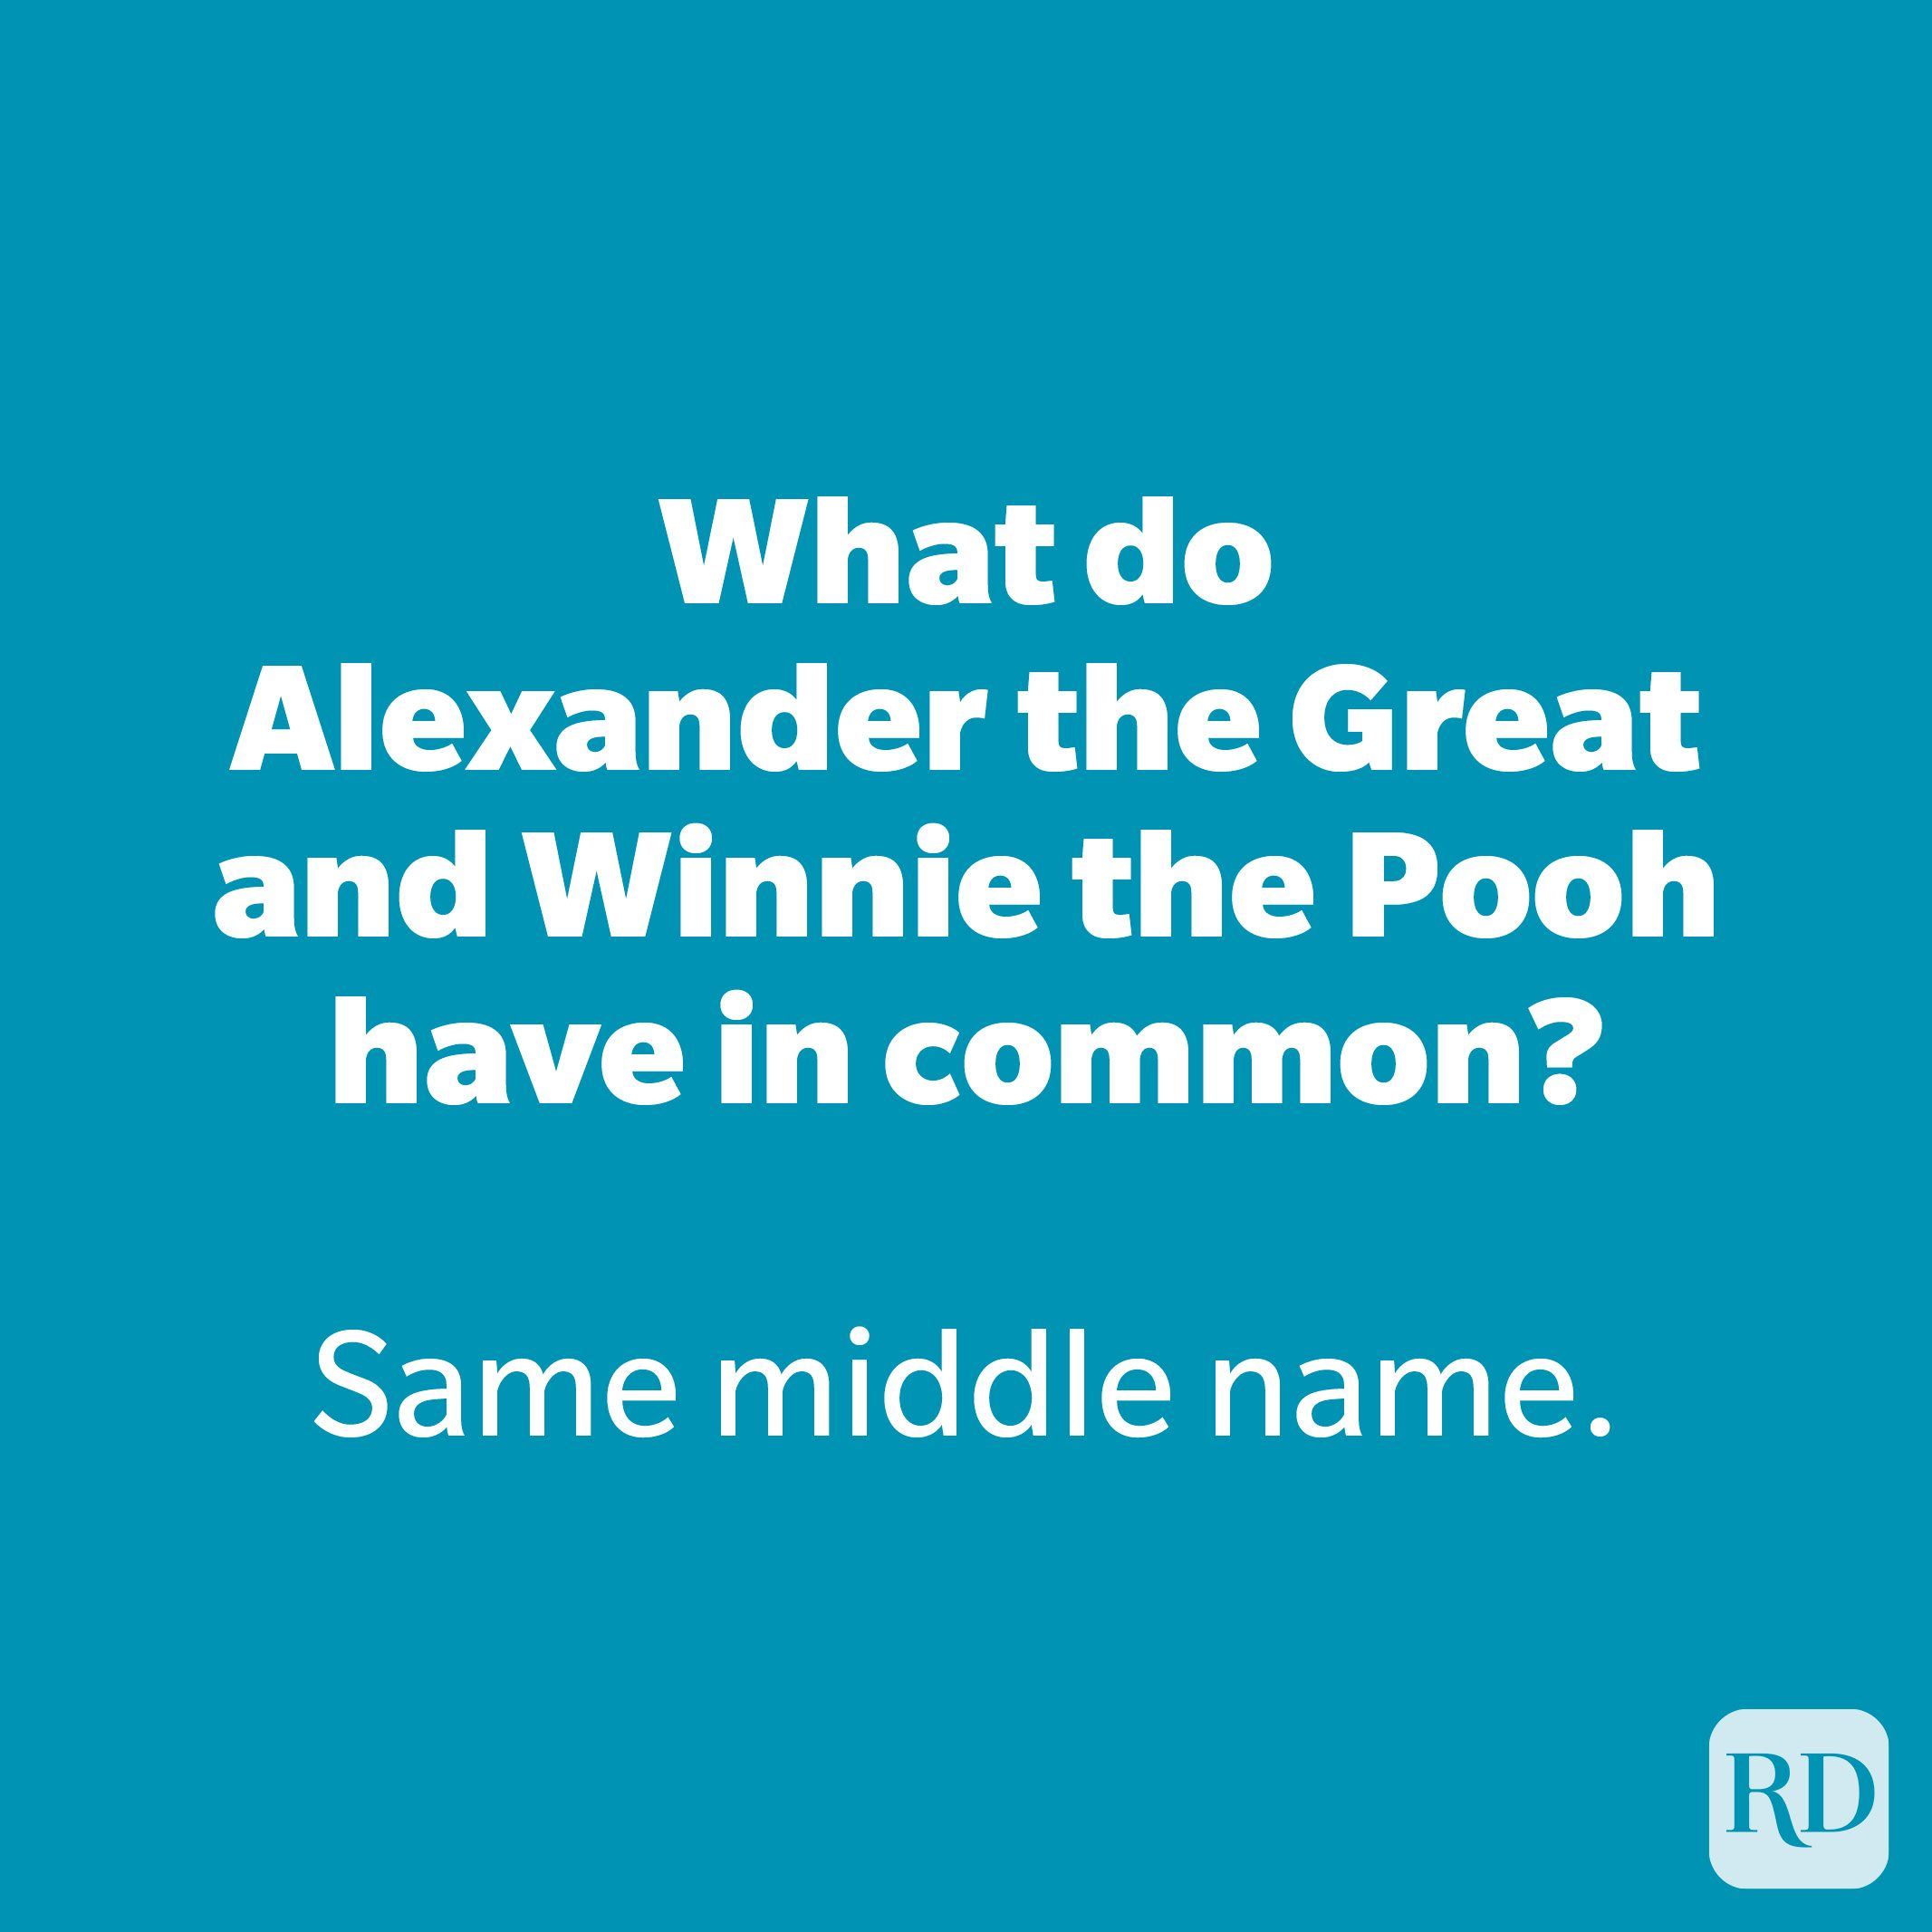 What do Alexander the Great and Winnie the Pooh have in common?